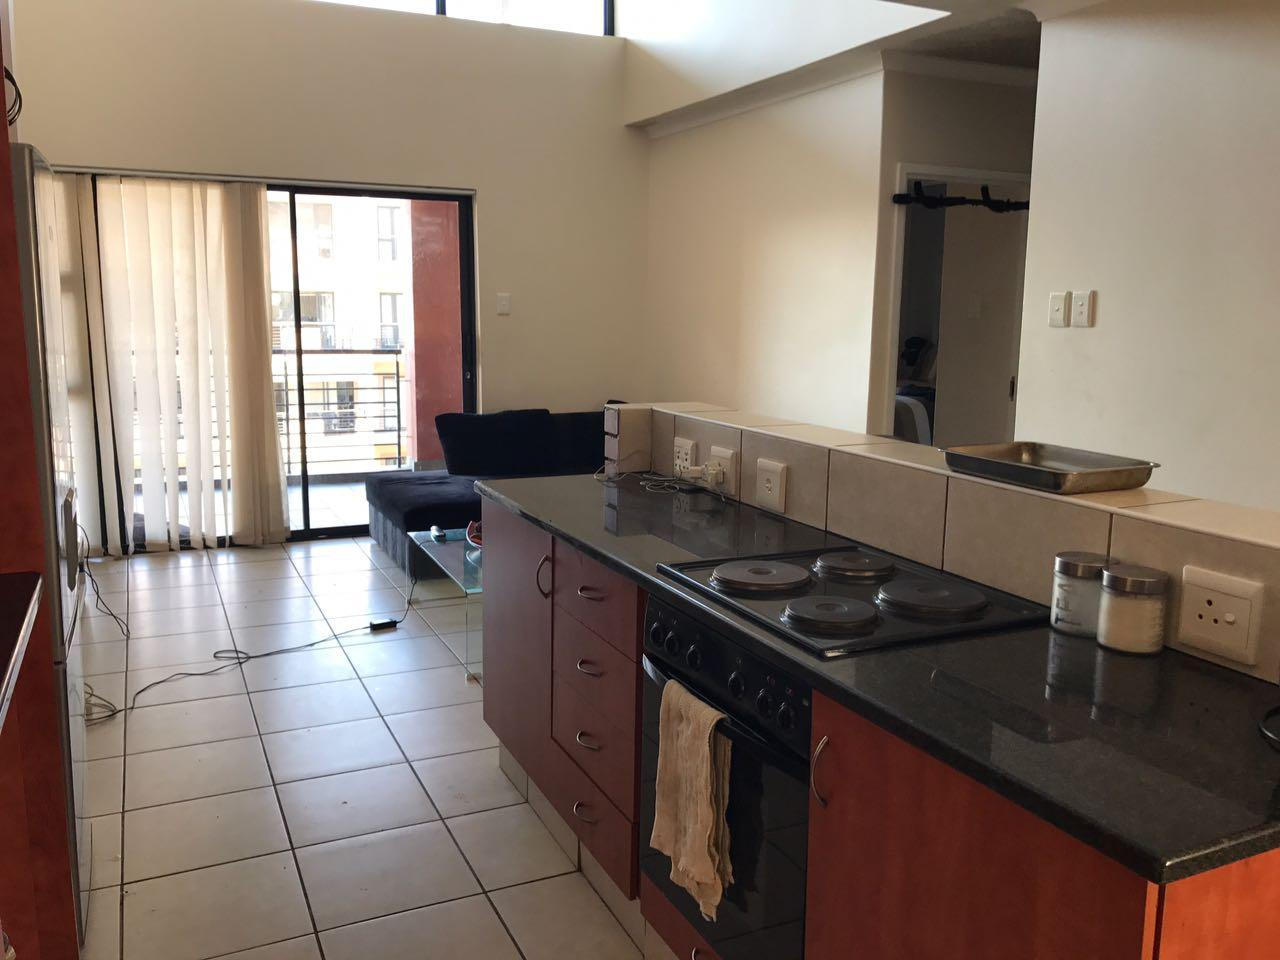 2 Bedroom Apartment for sale in Umhlanga Ridge 1801726 : photo#1